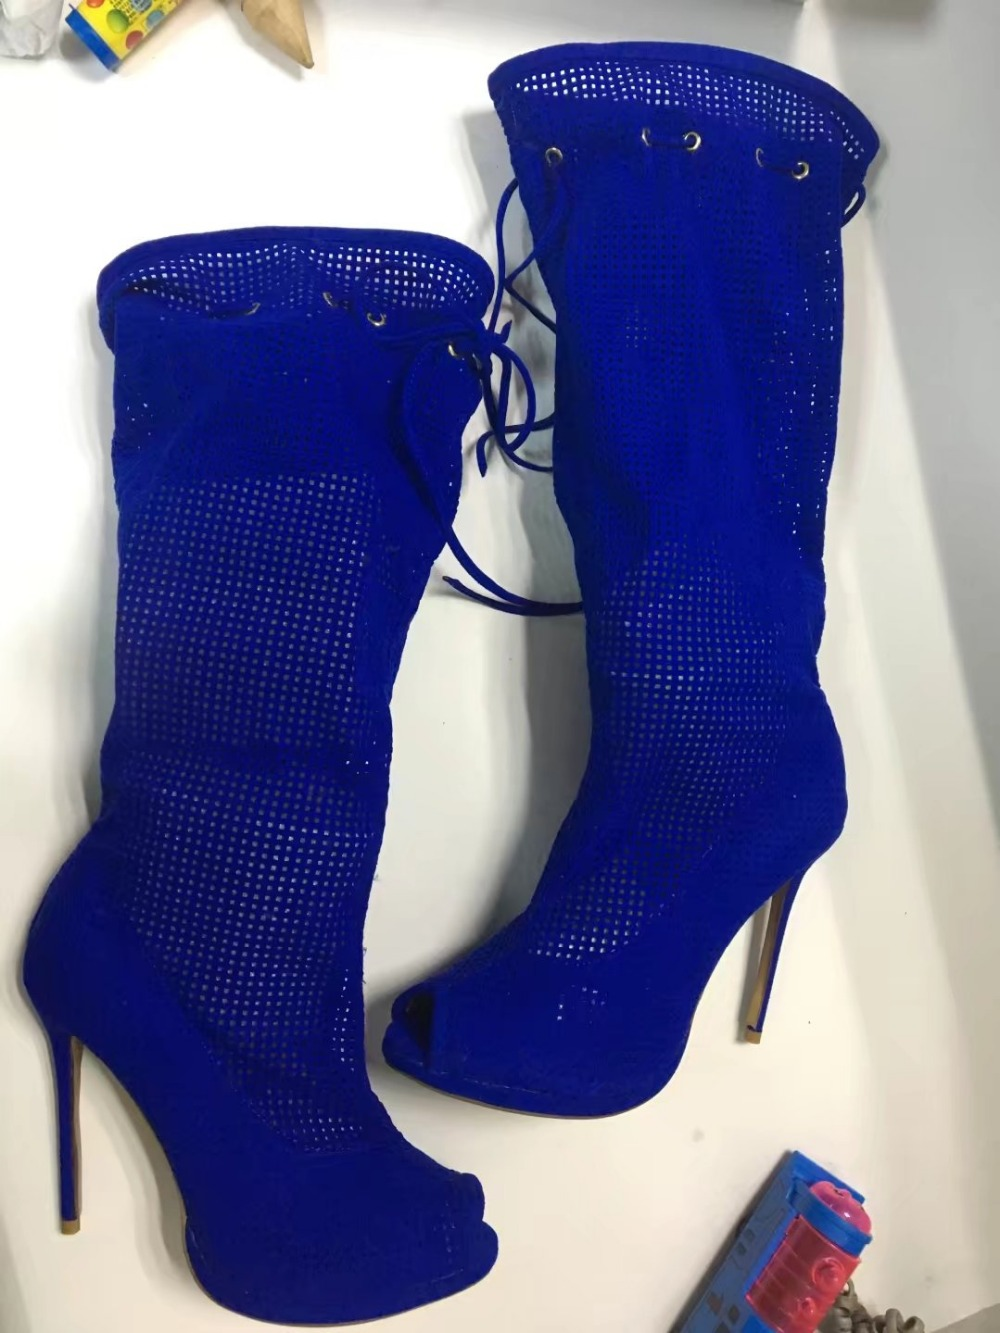 2017 summer women boots blue cut-outs high heels over the knee boots lace-up long boots sexy peep toe platform boots women 2017 summer newest hot sexy women narrow band high boots cut outs gladiator over the knee booty club boots women shoes